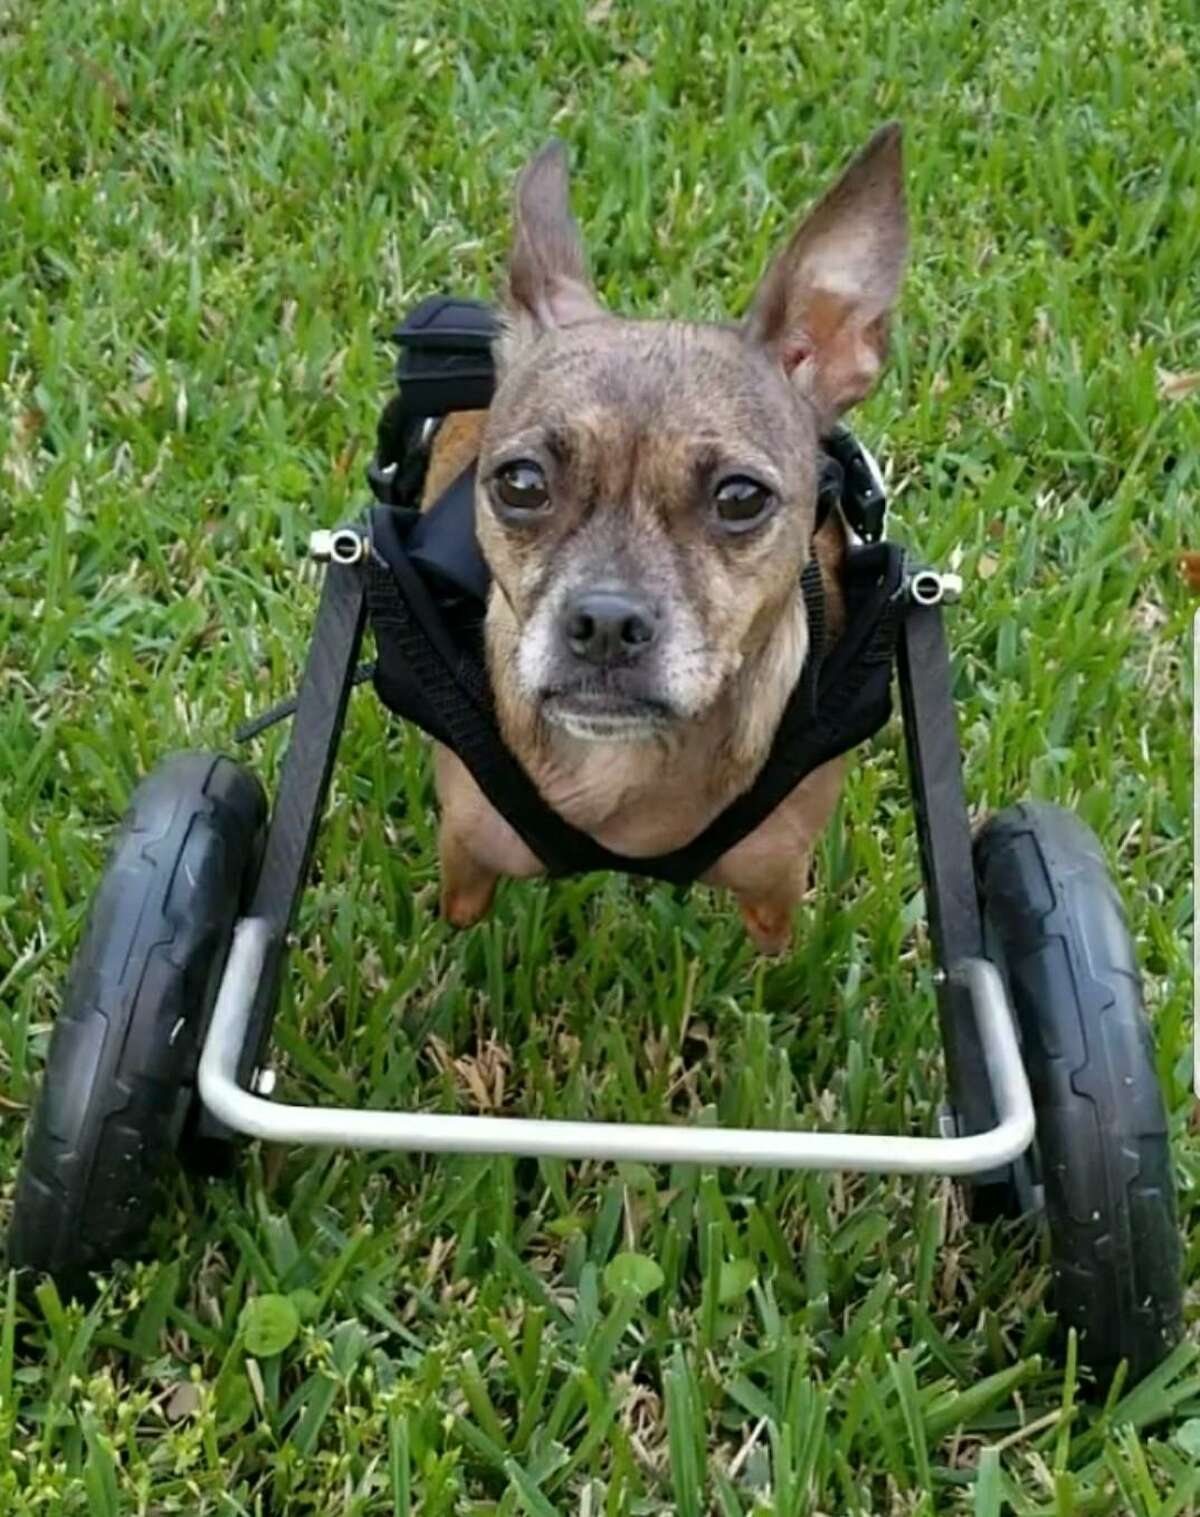 Nessie McNubbins is an 8-year-old rescue chihuahua adopted earlier this year by Theresa Loyacano.